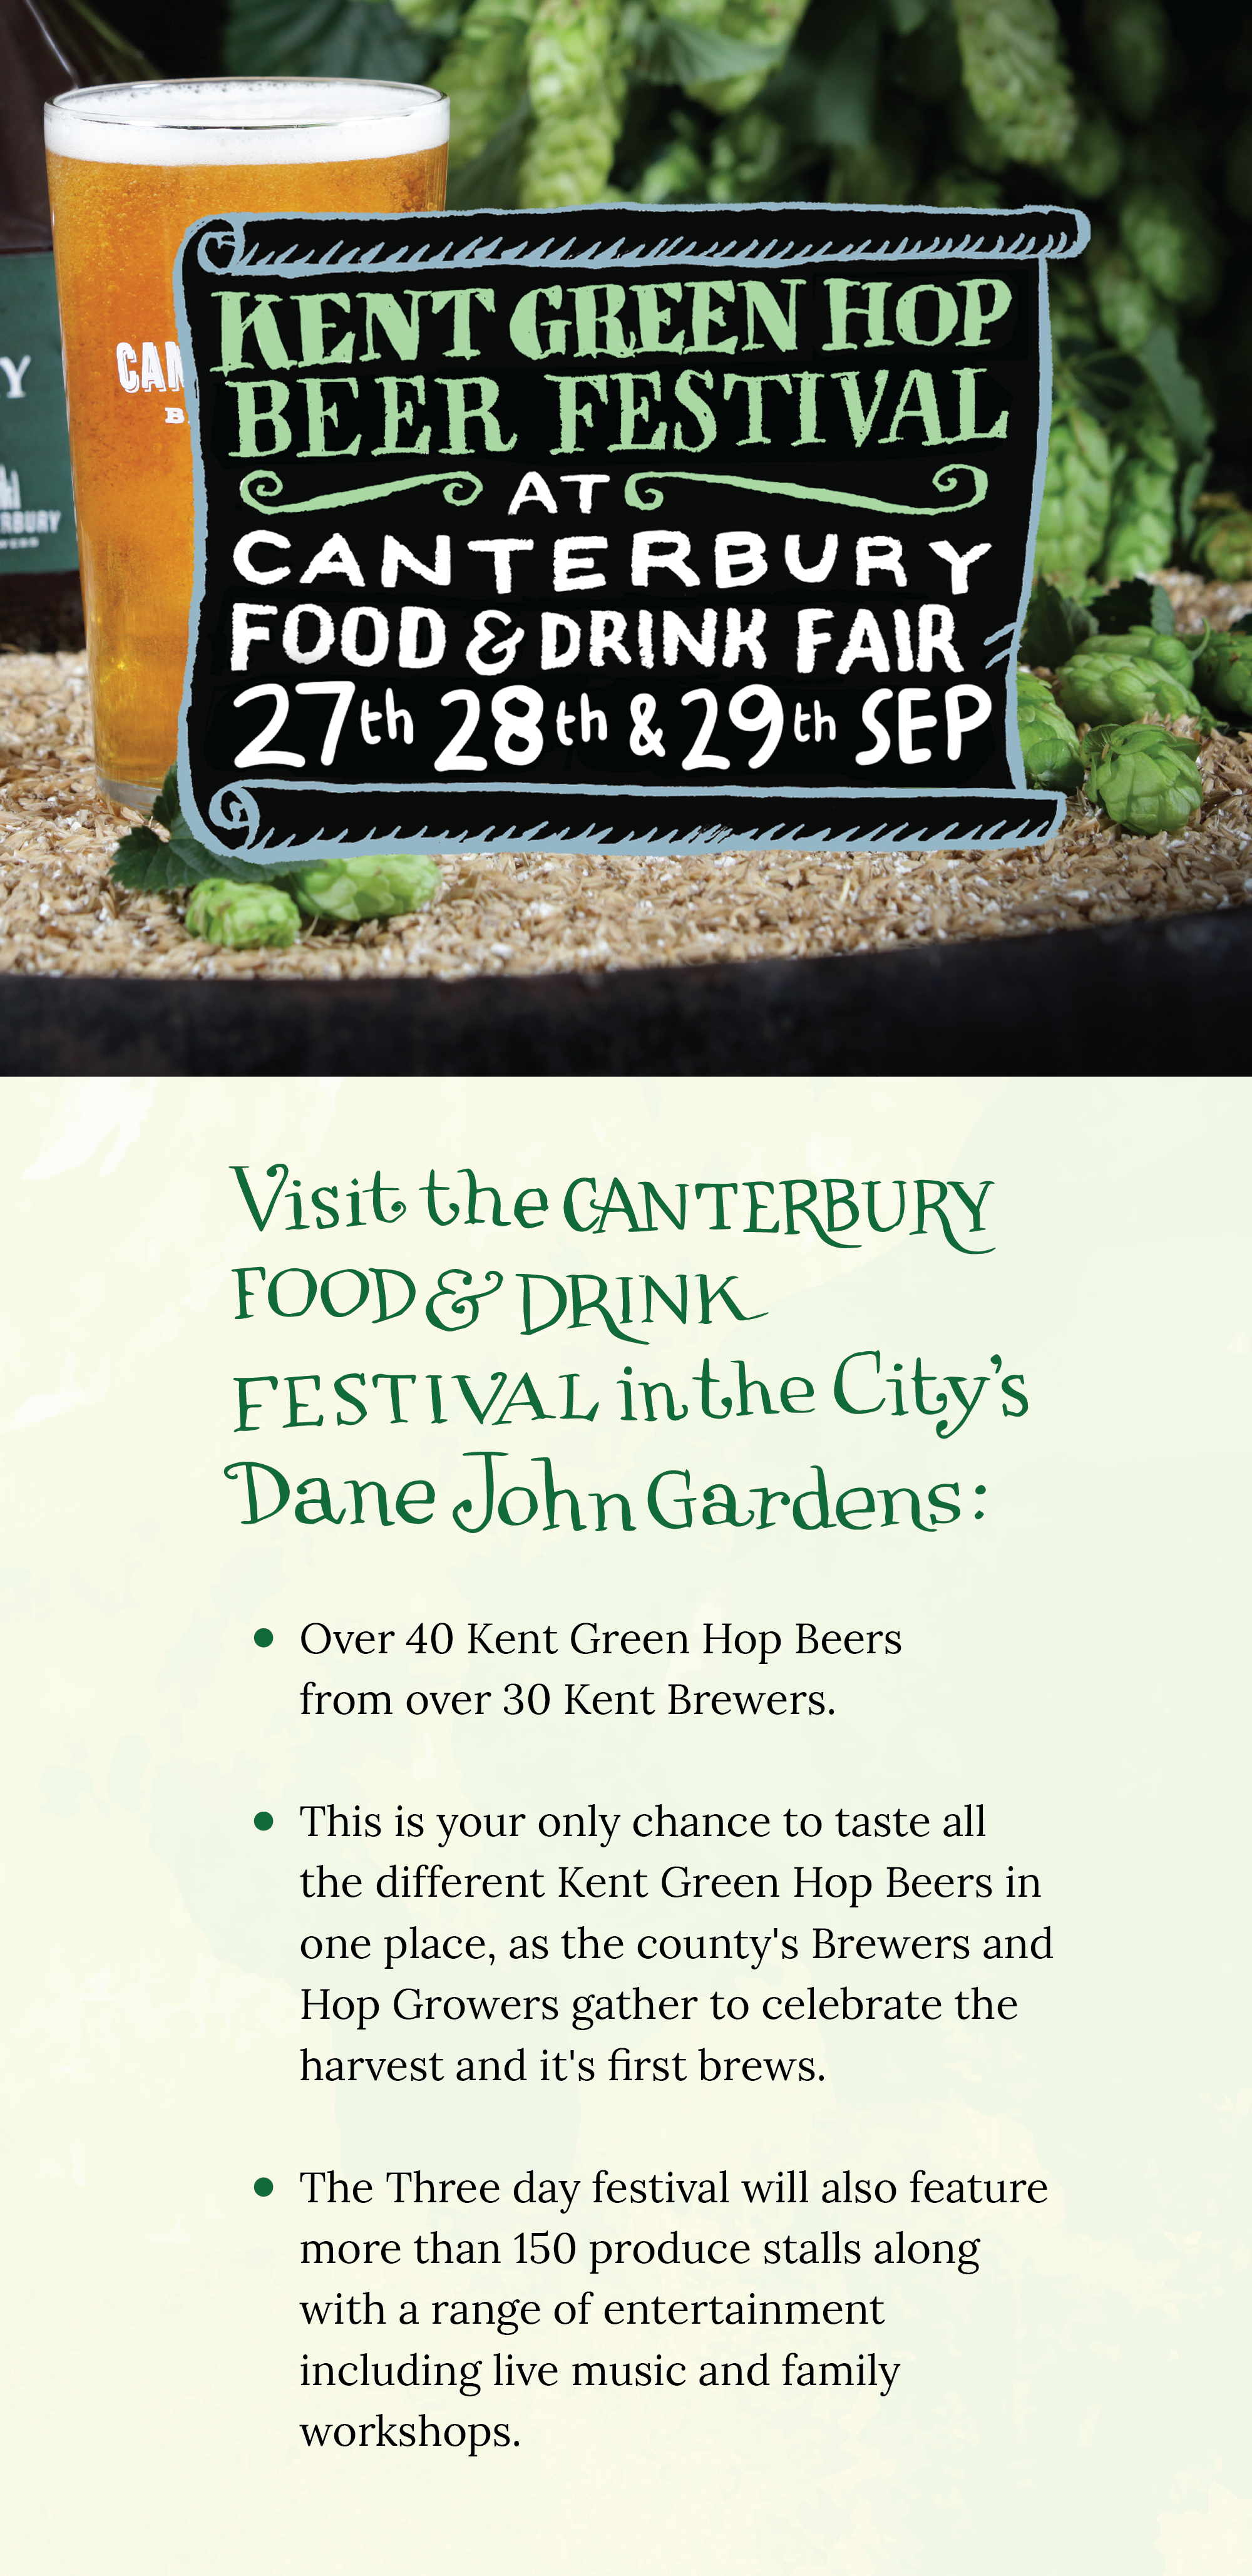 Poster advertising Kent Green Hop Beer Festival at Canterbury Food and Drink Fair. 27th 28th and 29th September. Dane John Gardens.